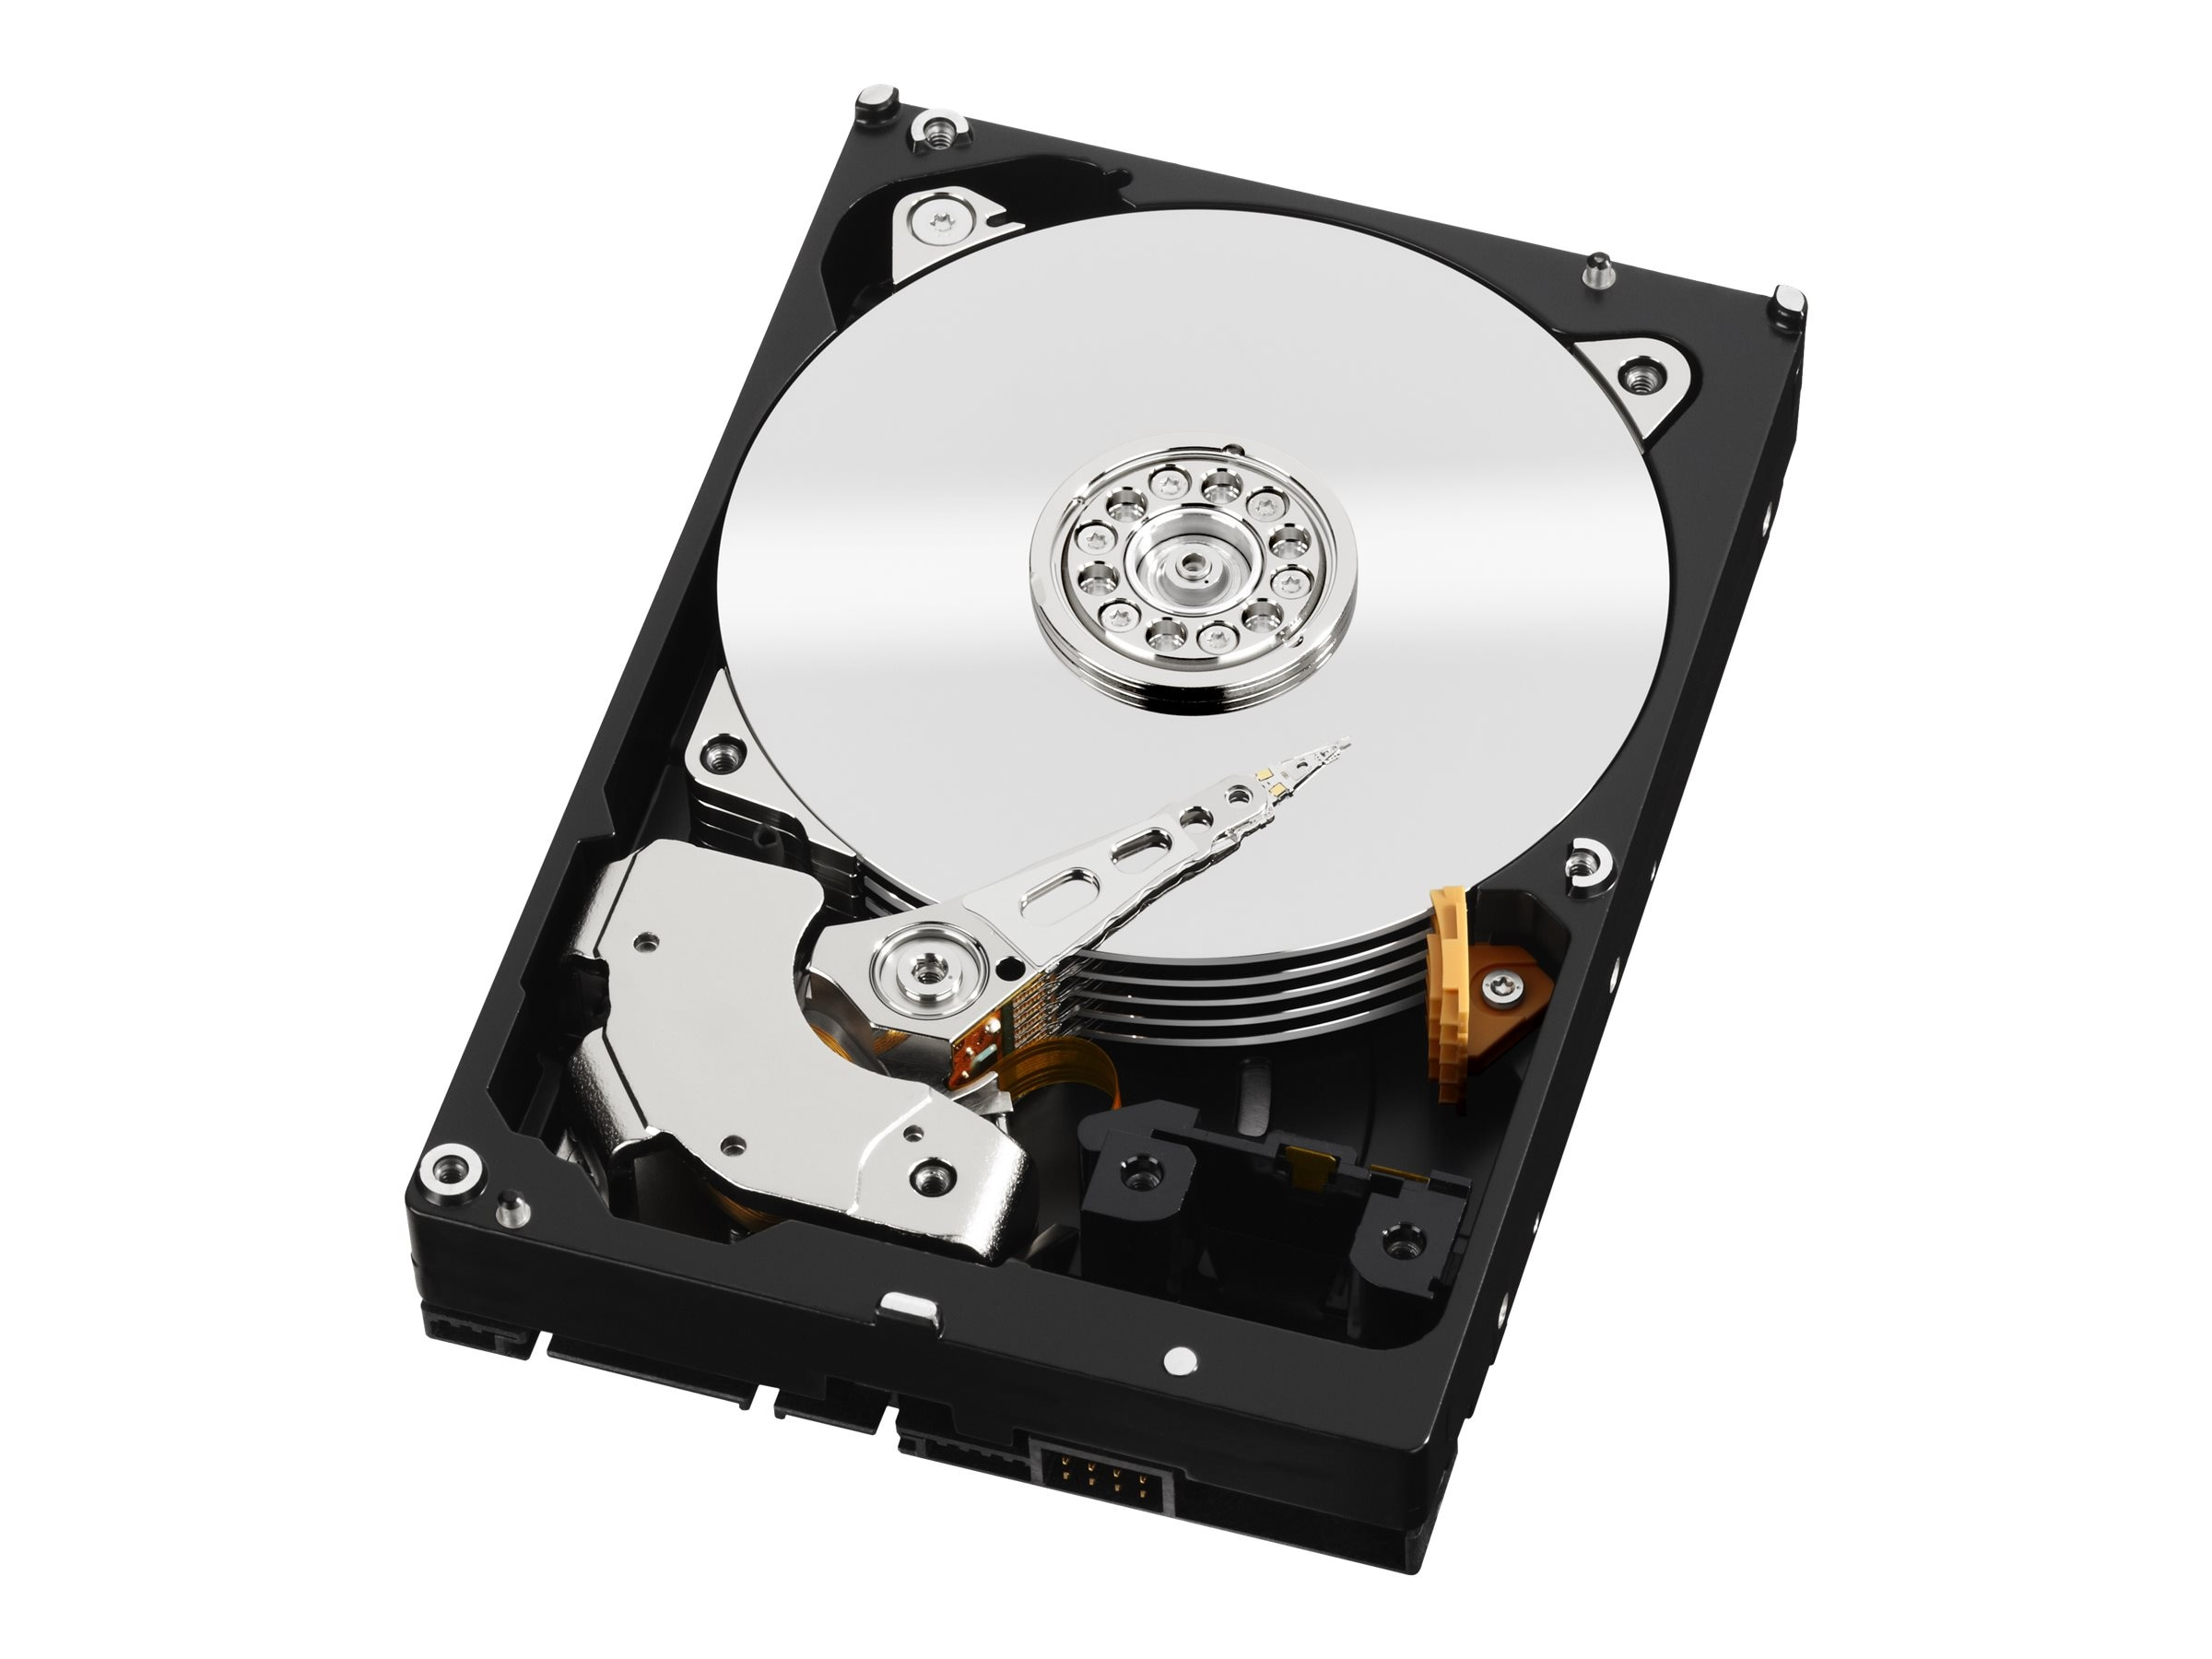 WD 1TB WD RE SATA 6Gb s 3.5 Internal Hard Drive - 64MB Cache, WD1003FBYZ, 15772484, Hard Drives - Internal